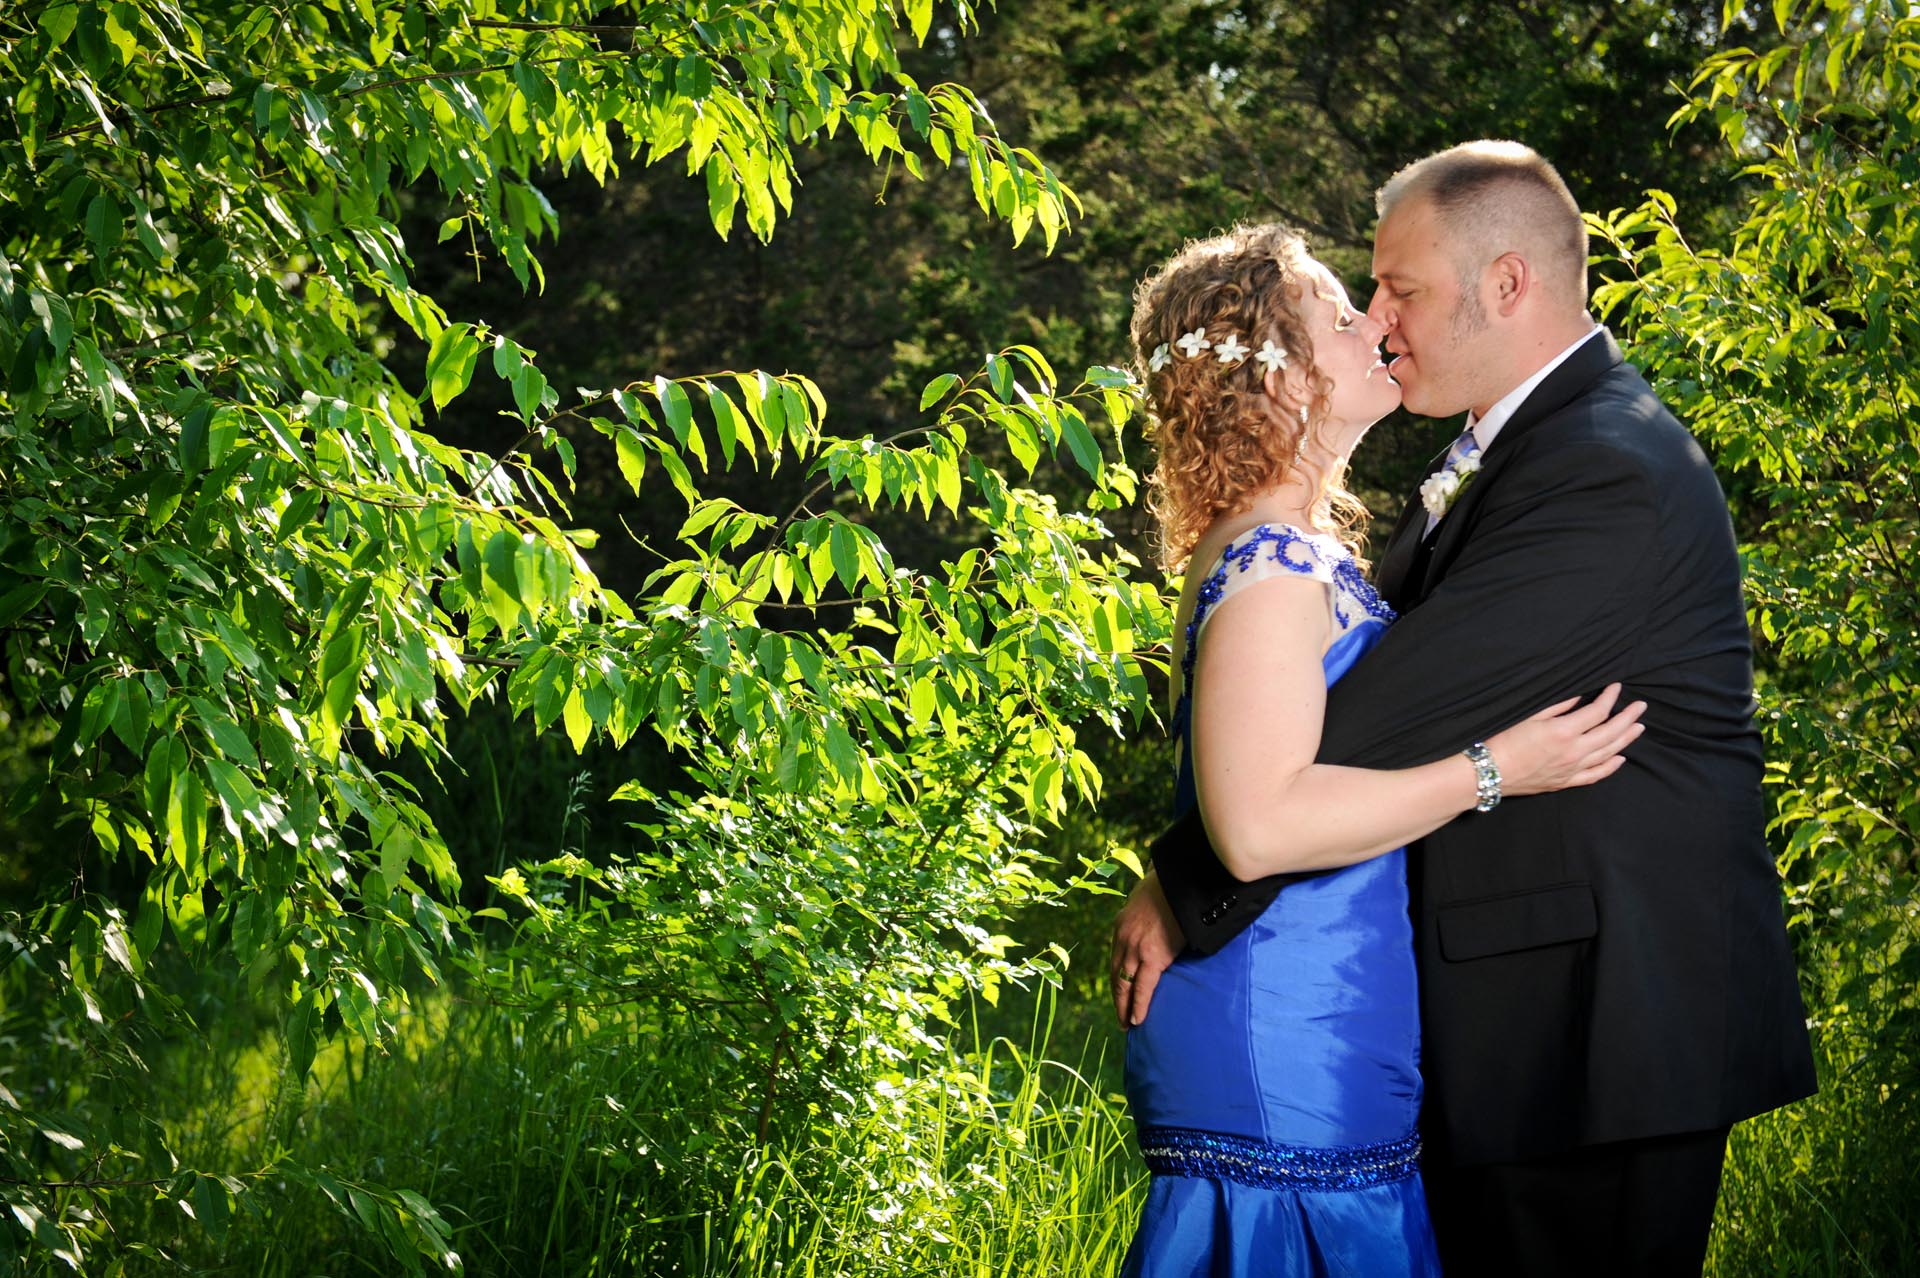 The budget conscience brides featuring contemporary and Pinterest worthy wedding photographs in Michigan highlights moving away from Pinterest to creating your unique wedding photography showing the bride and groom kissing in the woods after their Michigan wedding that emphasized photojournalist's moments and kept the bride on her budget.